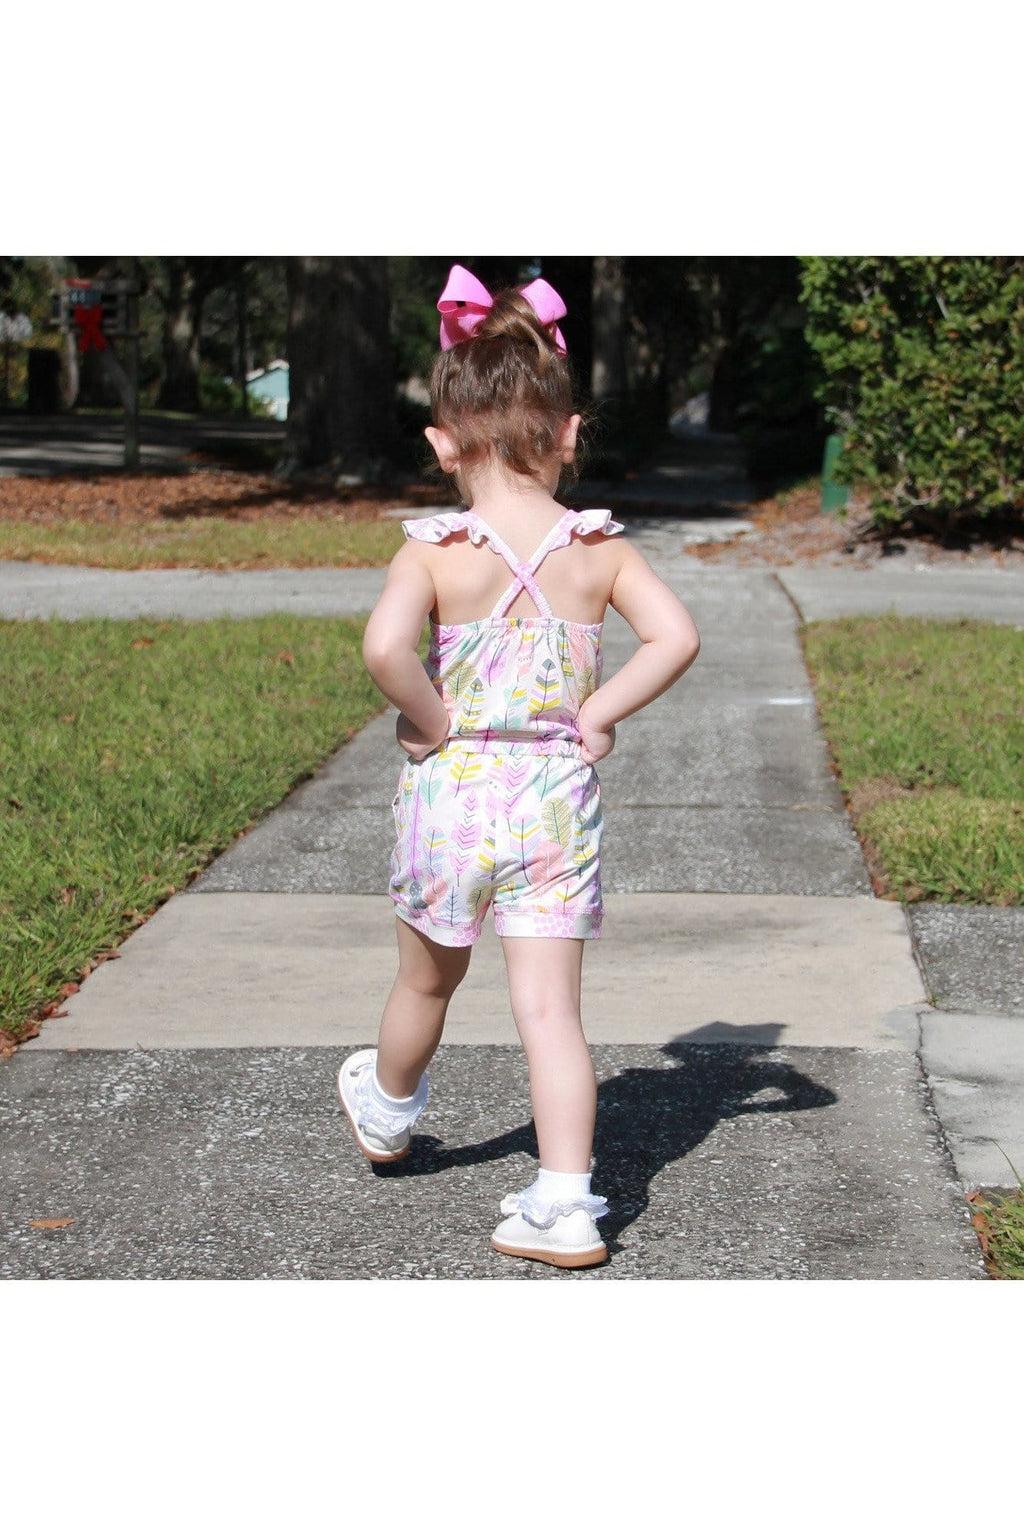 AnnLoren Big Little Girls Pink Feather & Polka Dots Shorts Jumpsuit Spring Summer One Piece Outfit - Himelhoch's